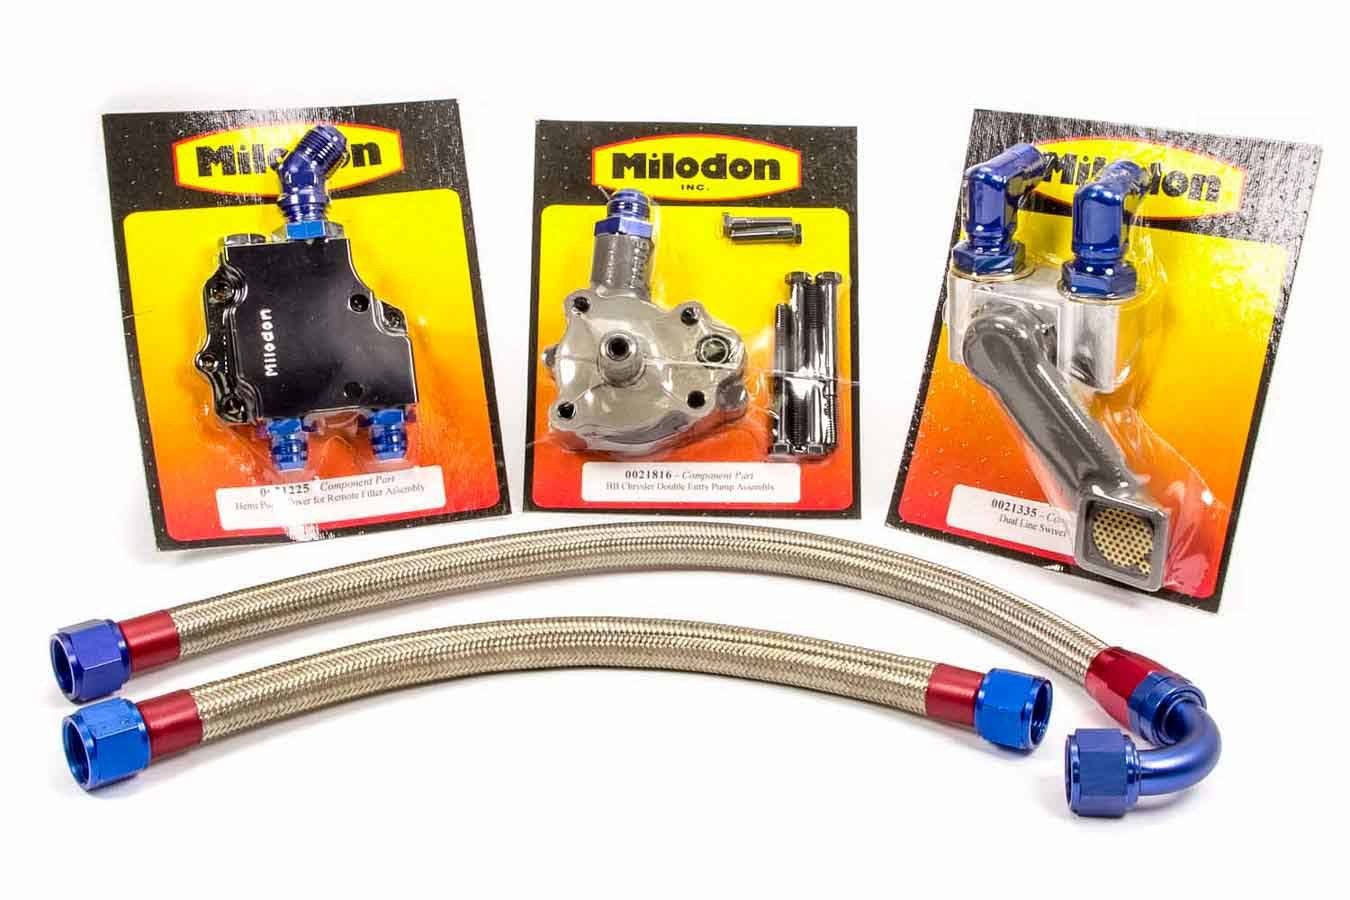 Milodon 21190 External Oil System, Dual Braided Stainless Lines / Swivel Pickup / Bolts / Fittings / O-Rings / Oil Pump / Remote Filter Included, Mopar 426 Hemi, Kit